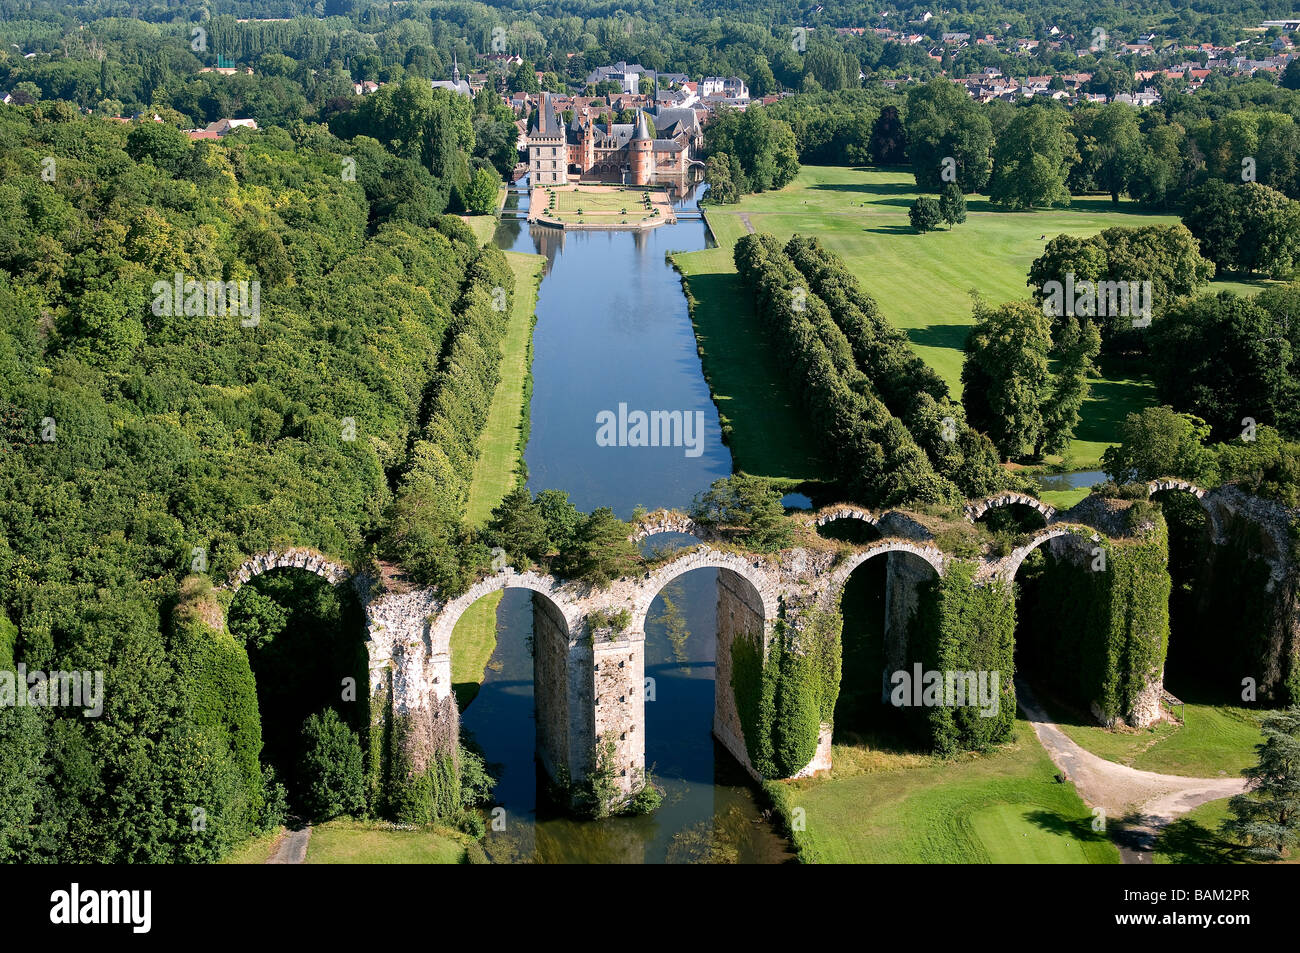 france eure et loir the aqueduct and the castle of maintenon stock photo royalty free image. Black Bedroom Furniture Sets. Home Design Ideas